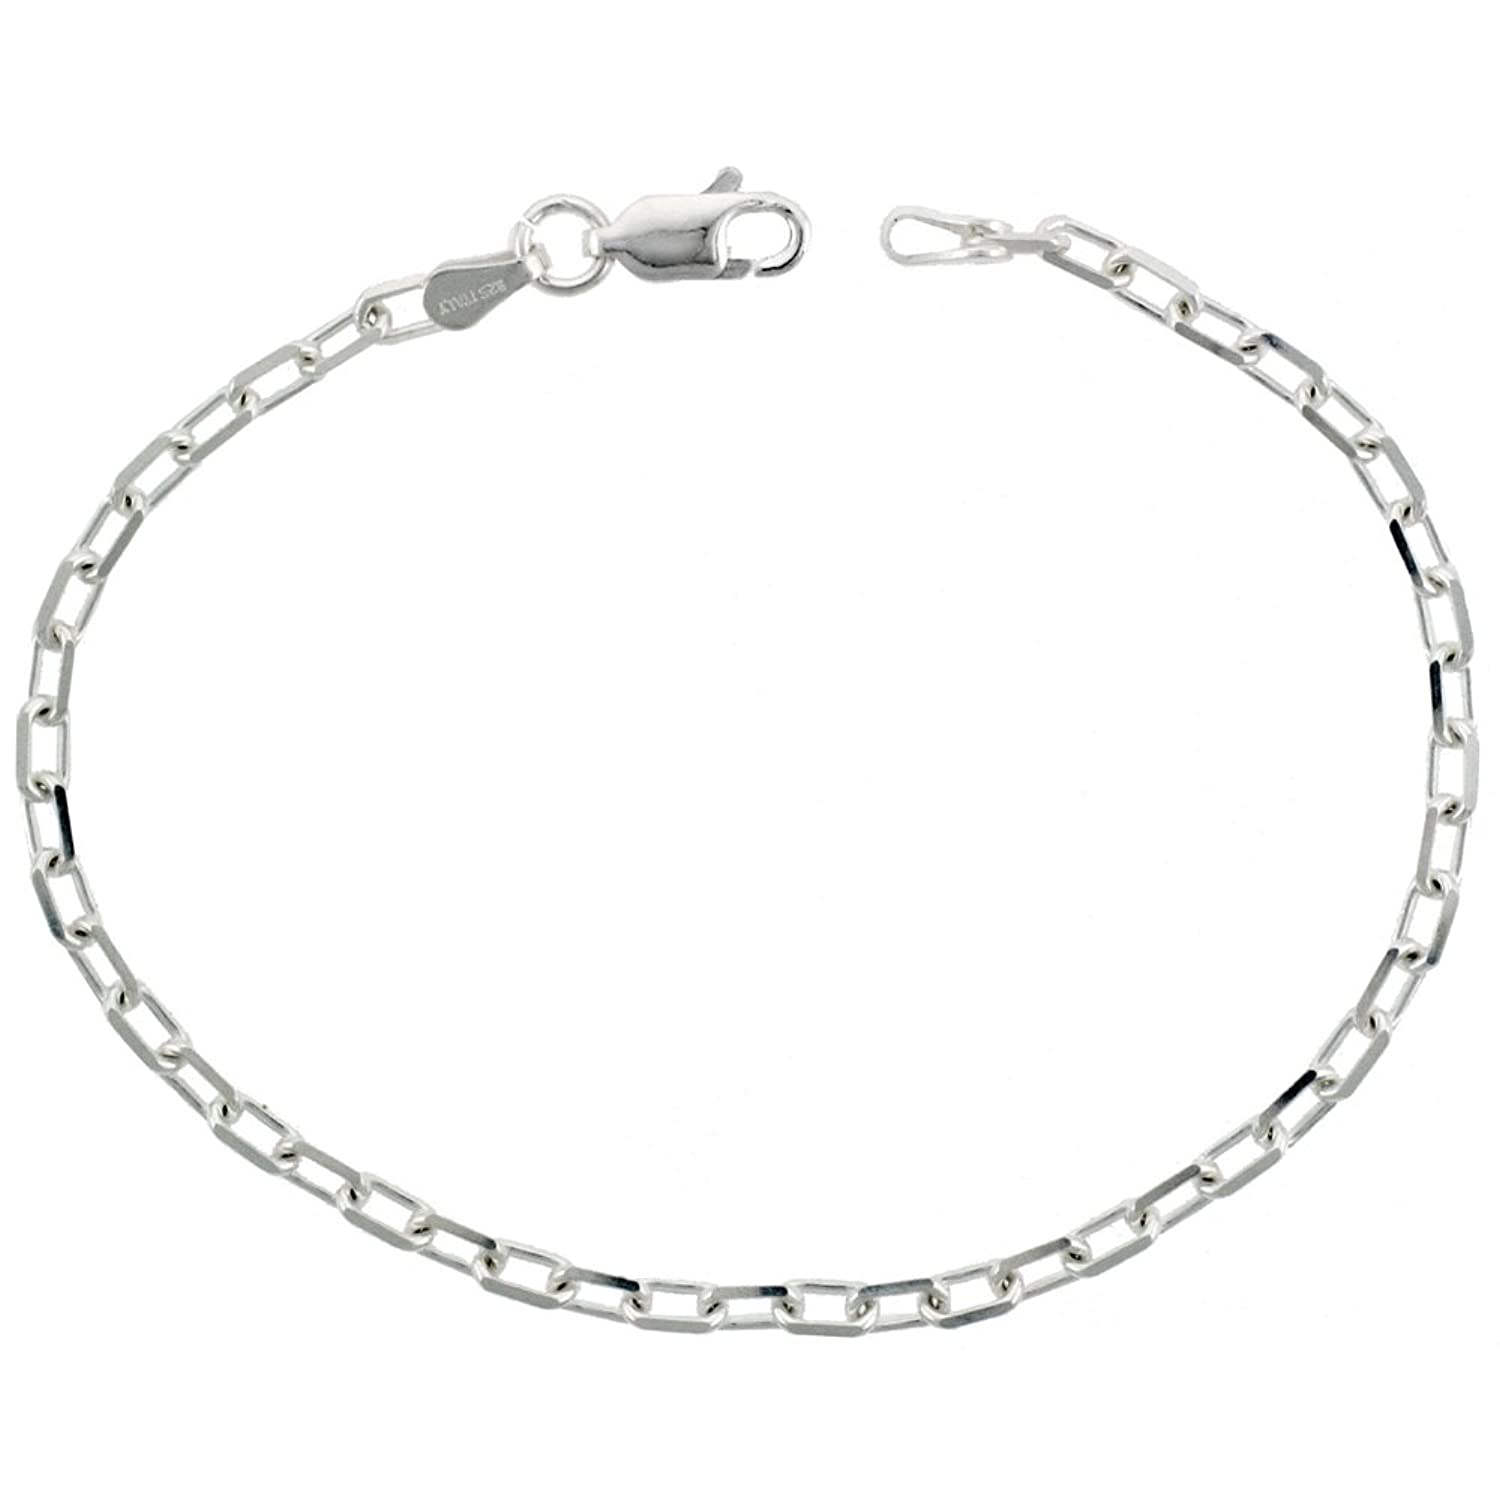 u free class sterling jewelry only ab sizes shipments silver anklet shipping s bracelets usps on